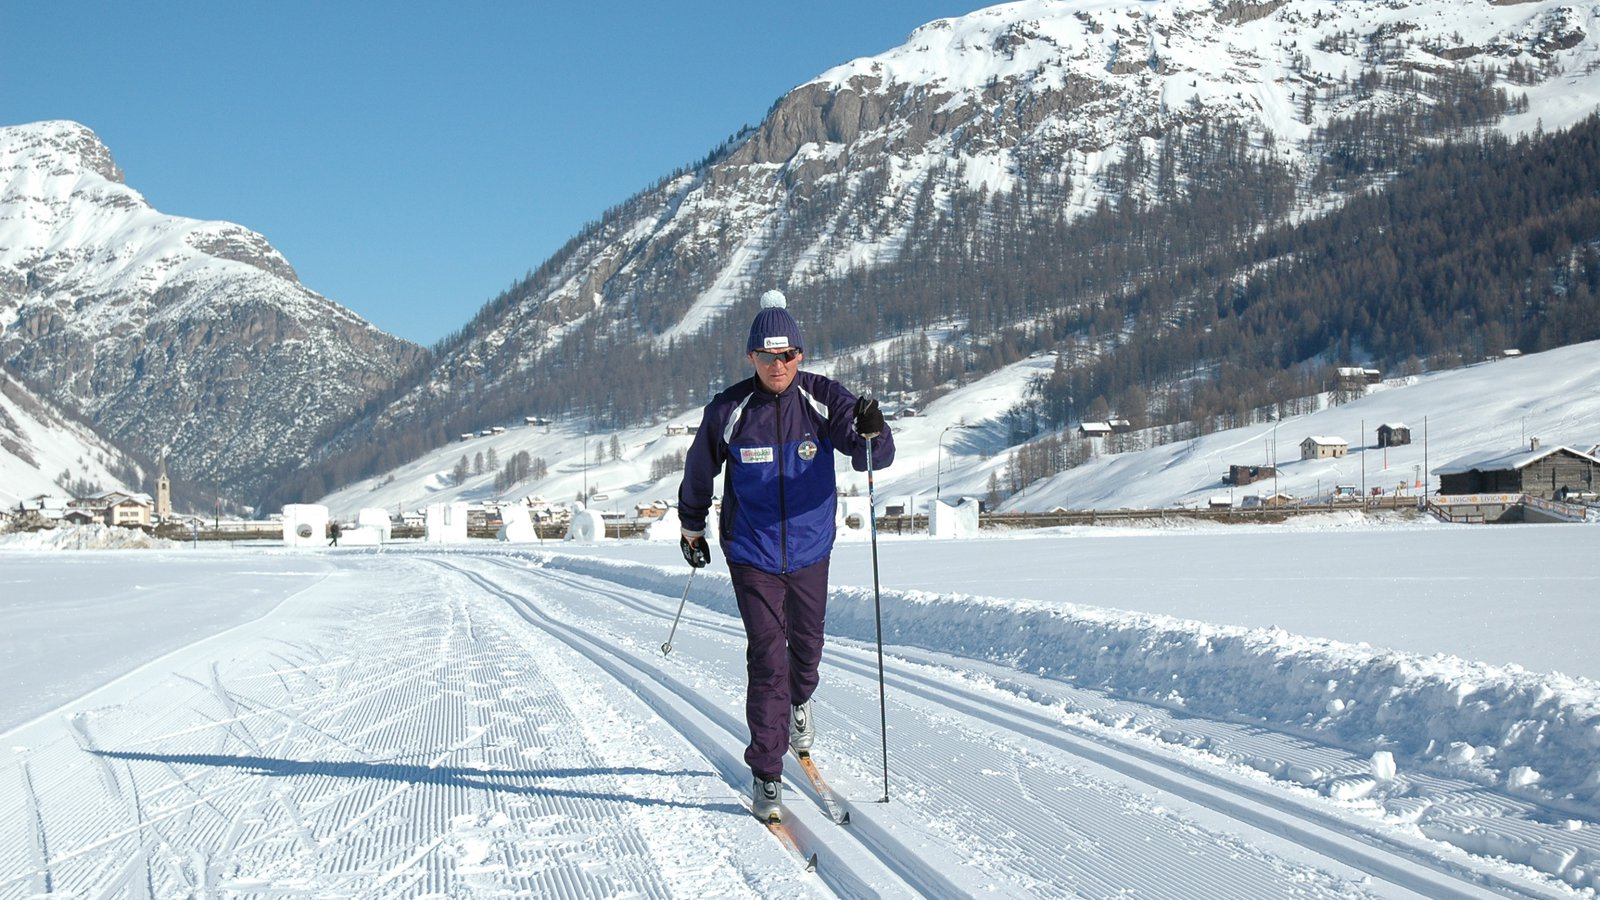 Livigno Ski Area showing cross country skiing and snow as well as an individual male